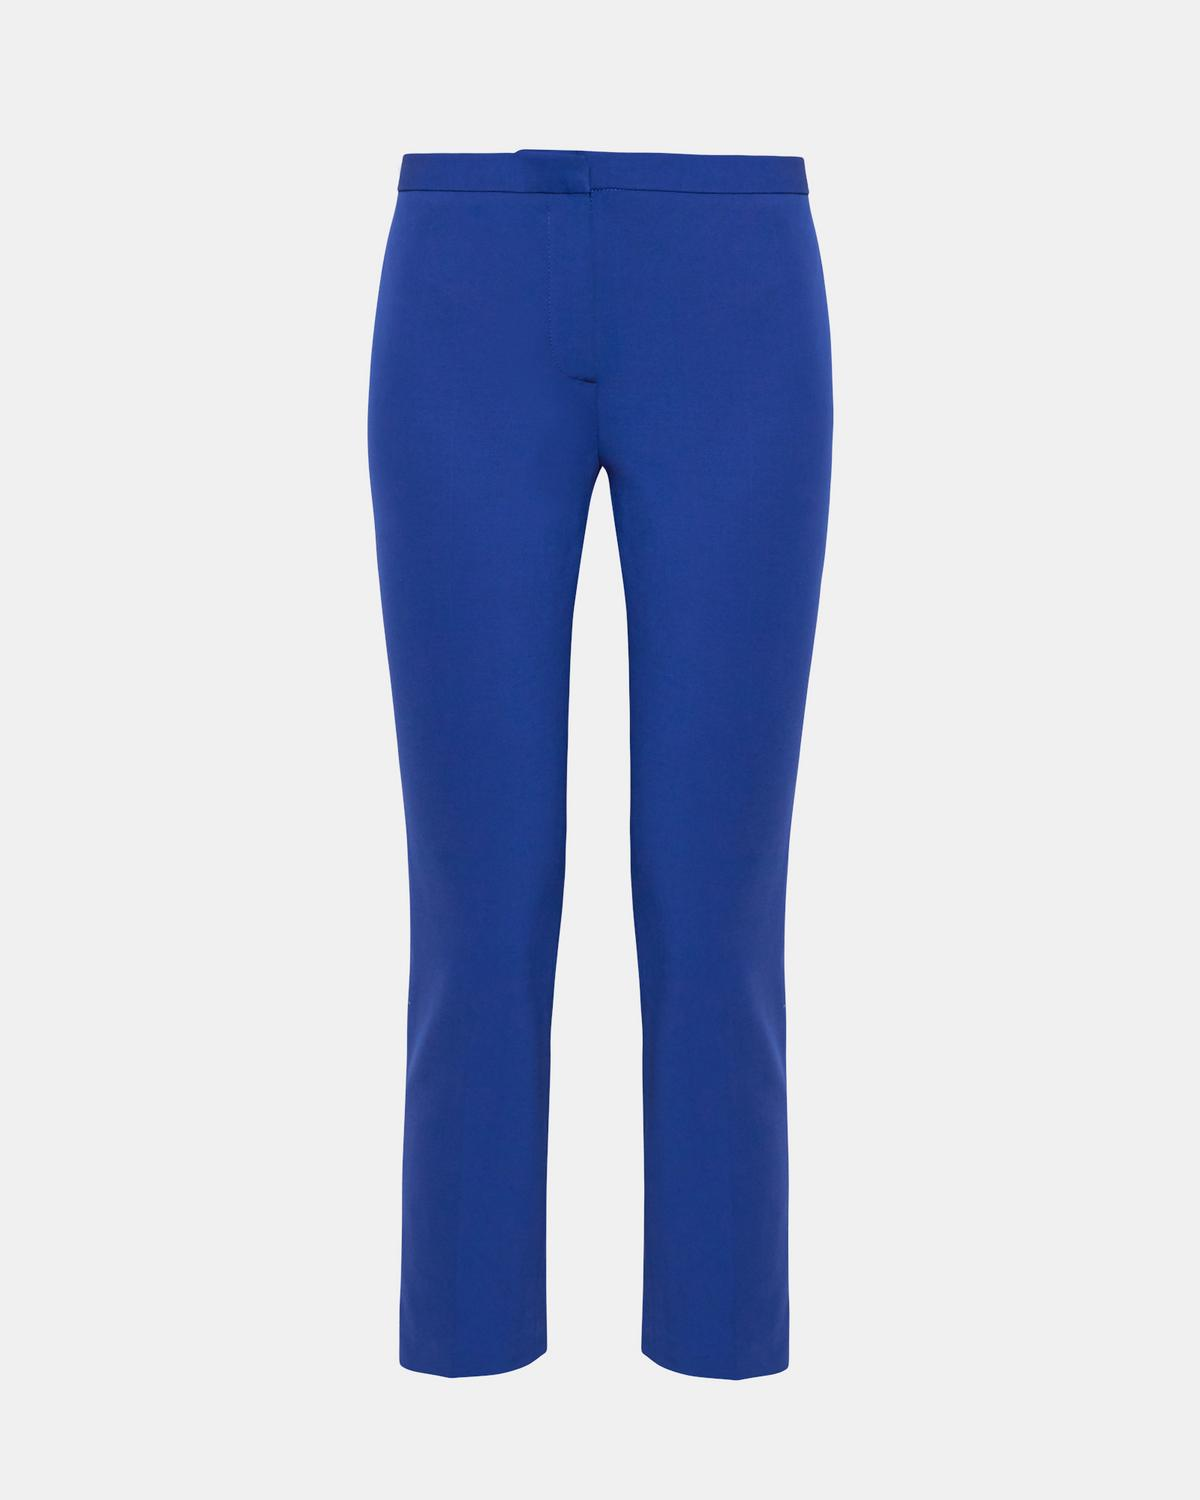 Double Stretch Cotton Classic Skinny Pant